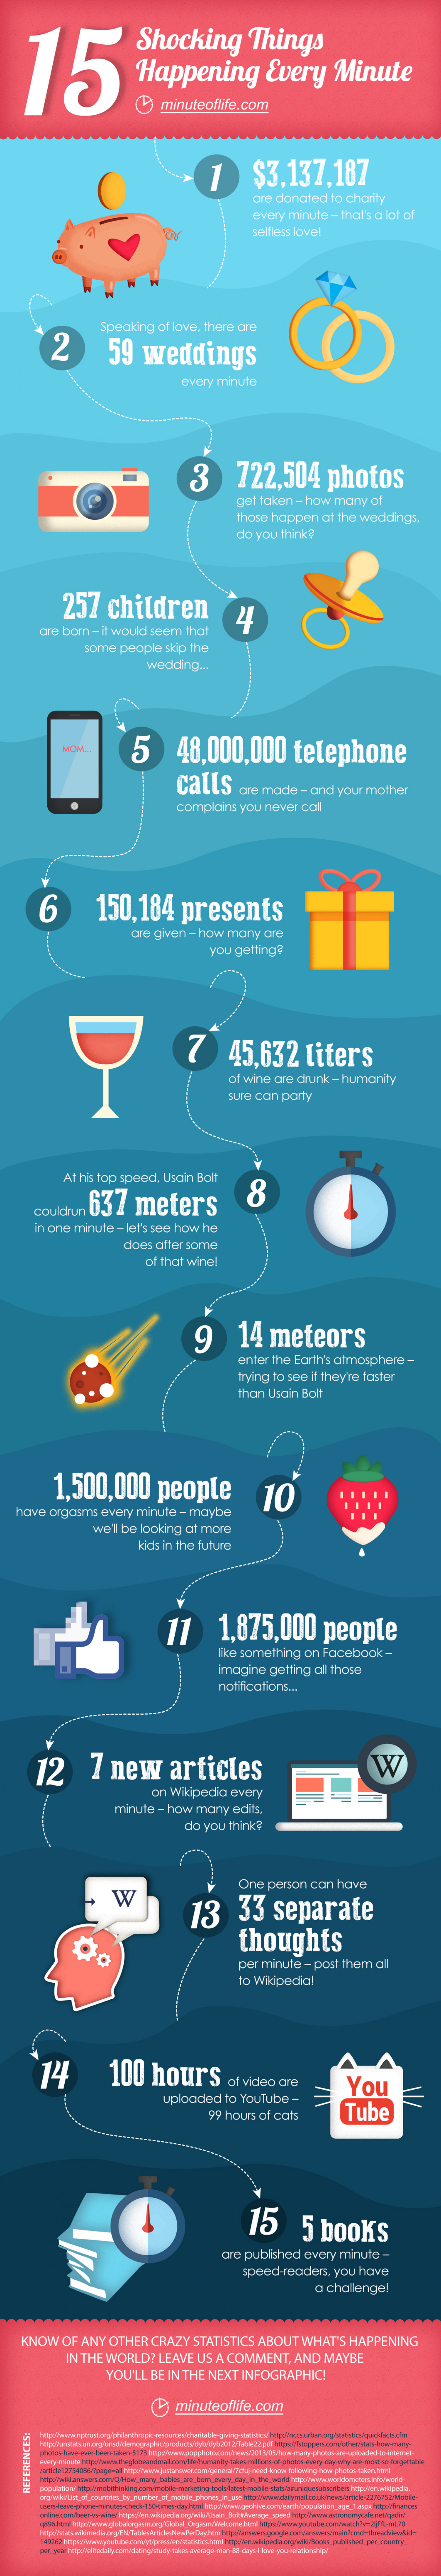 15 Shocking Things Happening Every Minute  Infographic